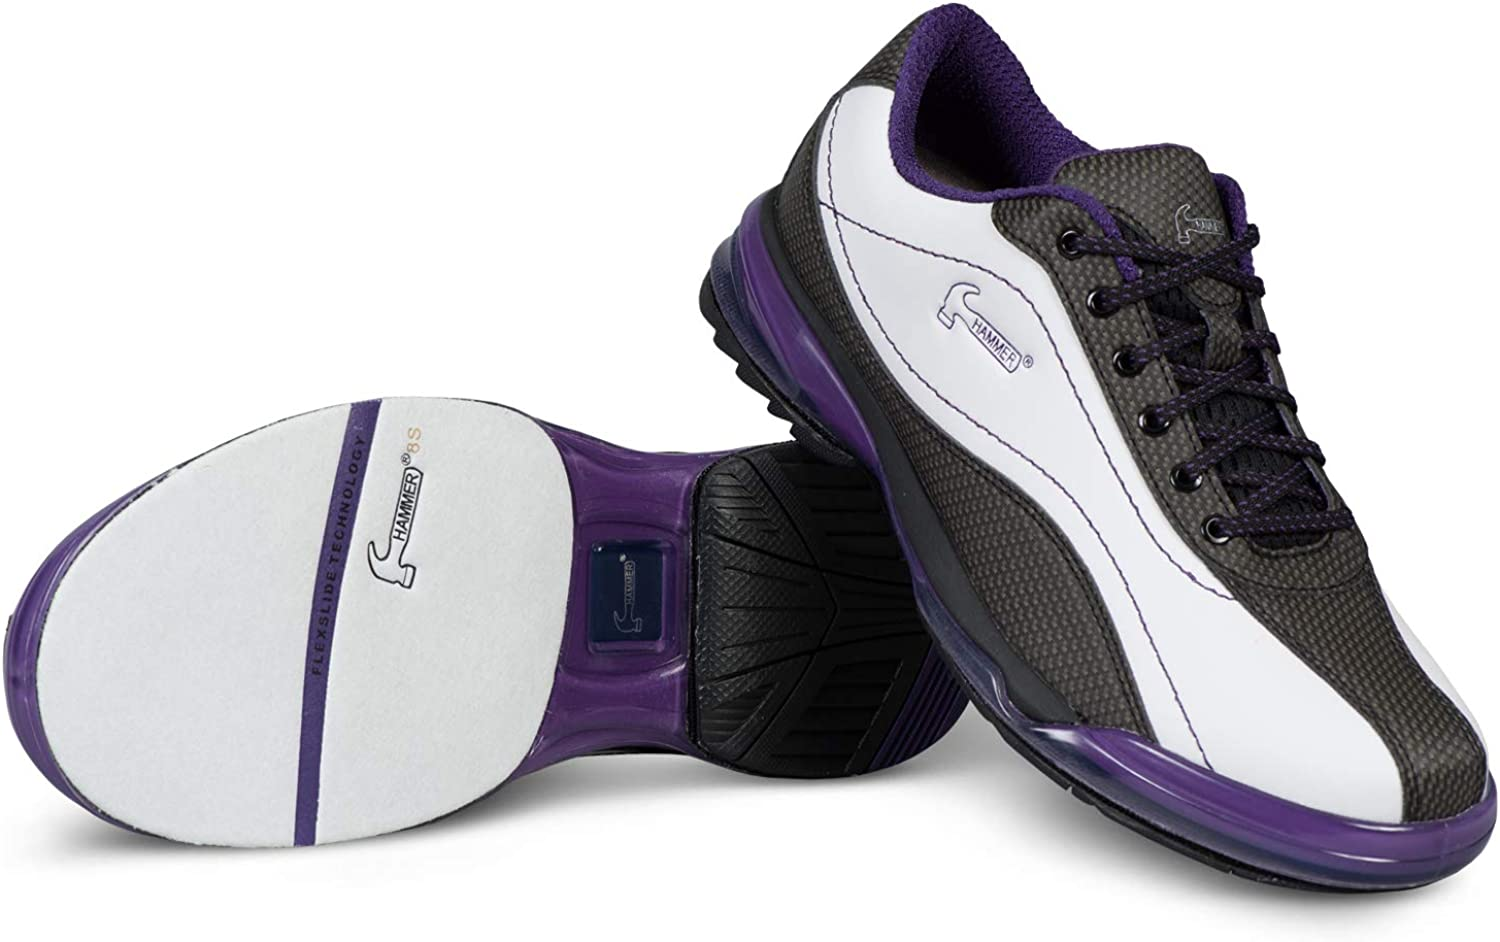 KR Strikeforce Hammer Force Women's Bowling Shoes Right Hand White Black Purple